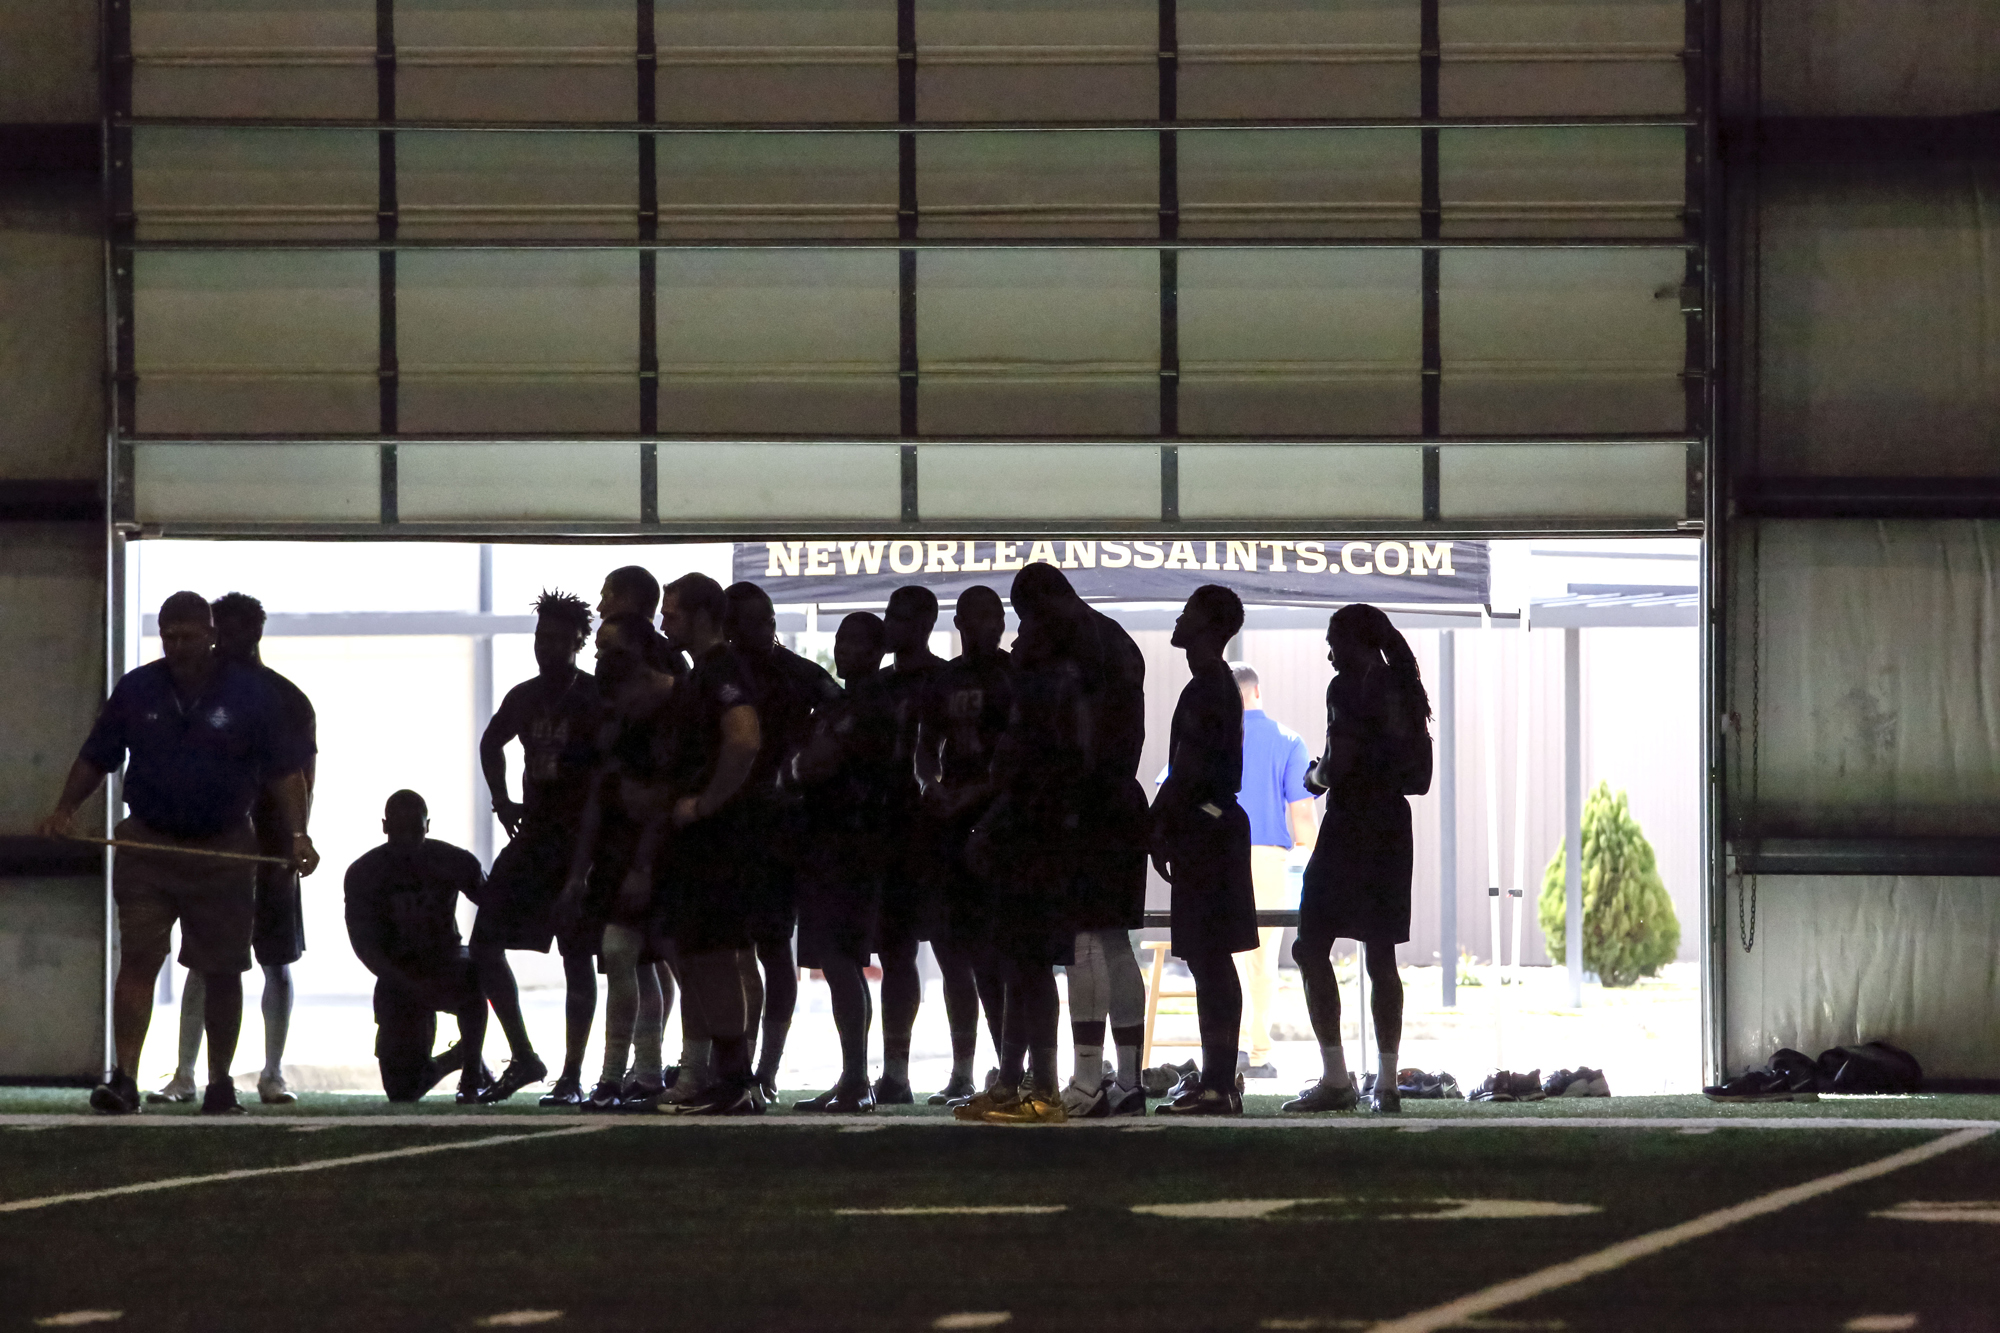 Tight ends and receivers await their next drill during the NFL football regional combine at the New Orleans Saints training facility in Metairie, La., Sunday, March 13, 2016.